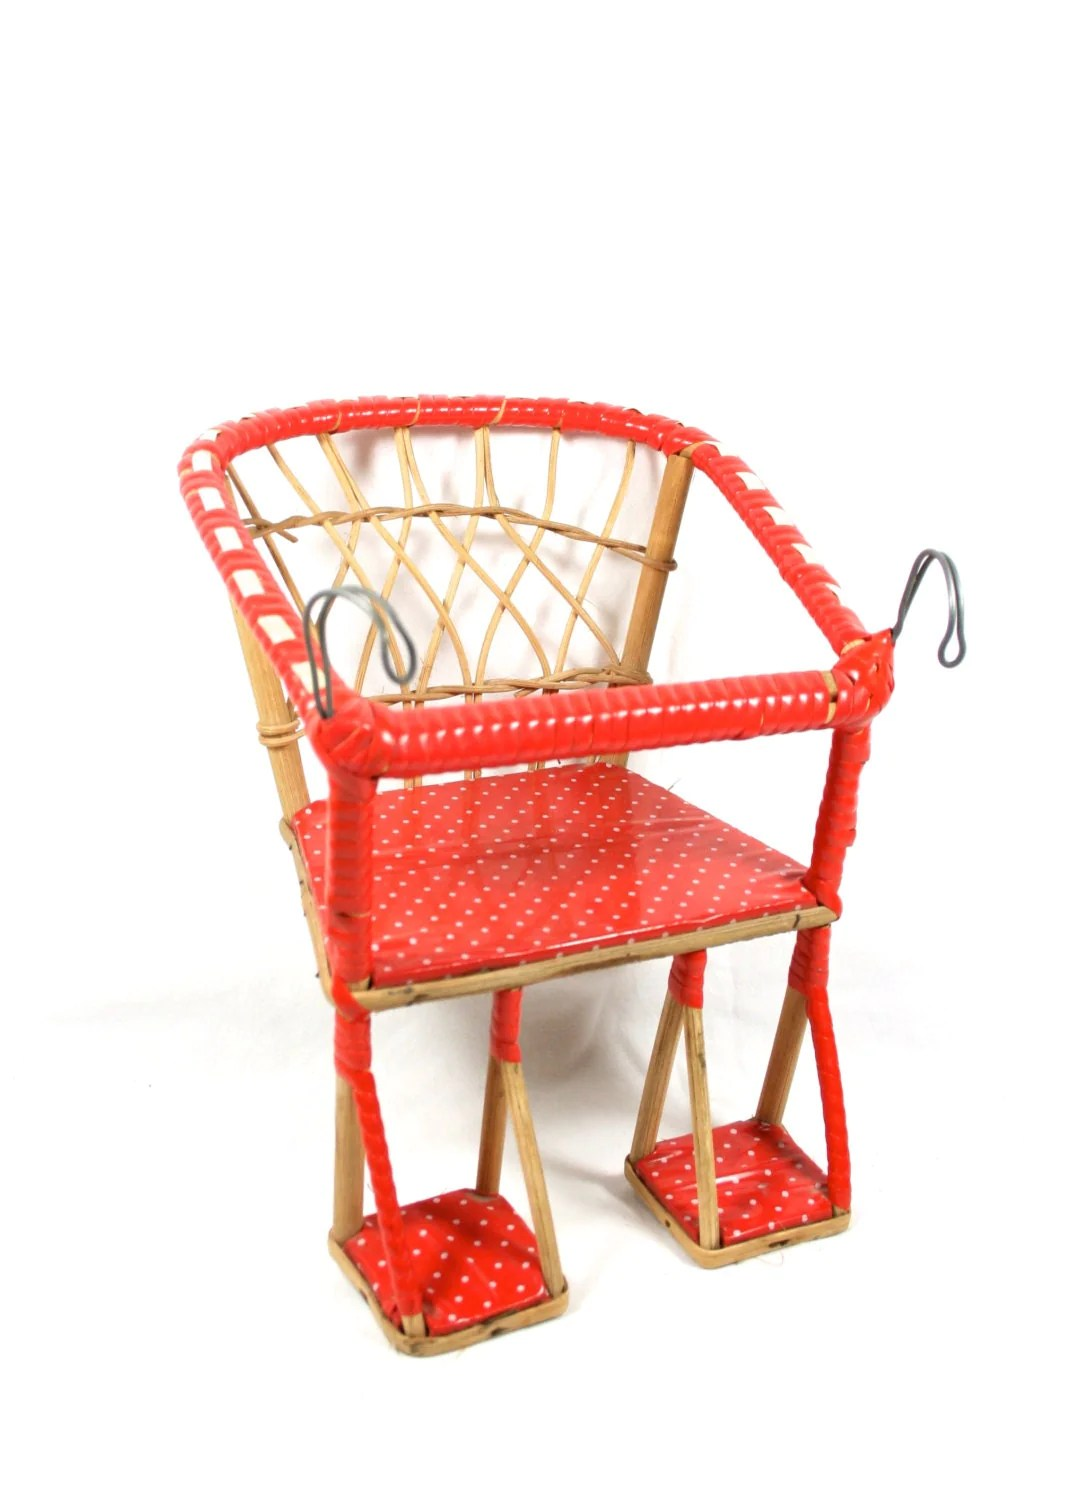 Bike Chair Red Wicker Doll Chair Bicycle Seat Bike Seat Doll Furniture